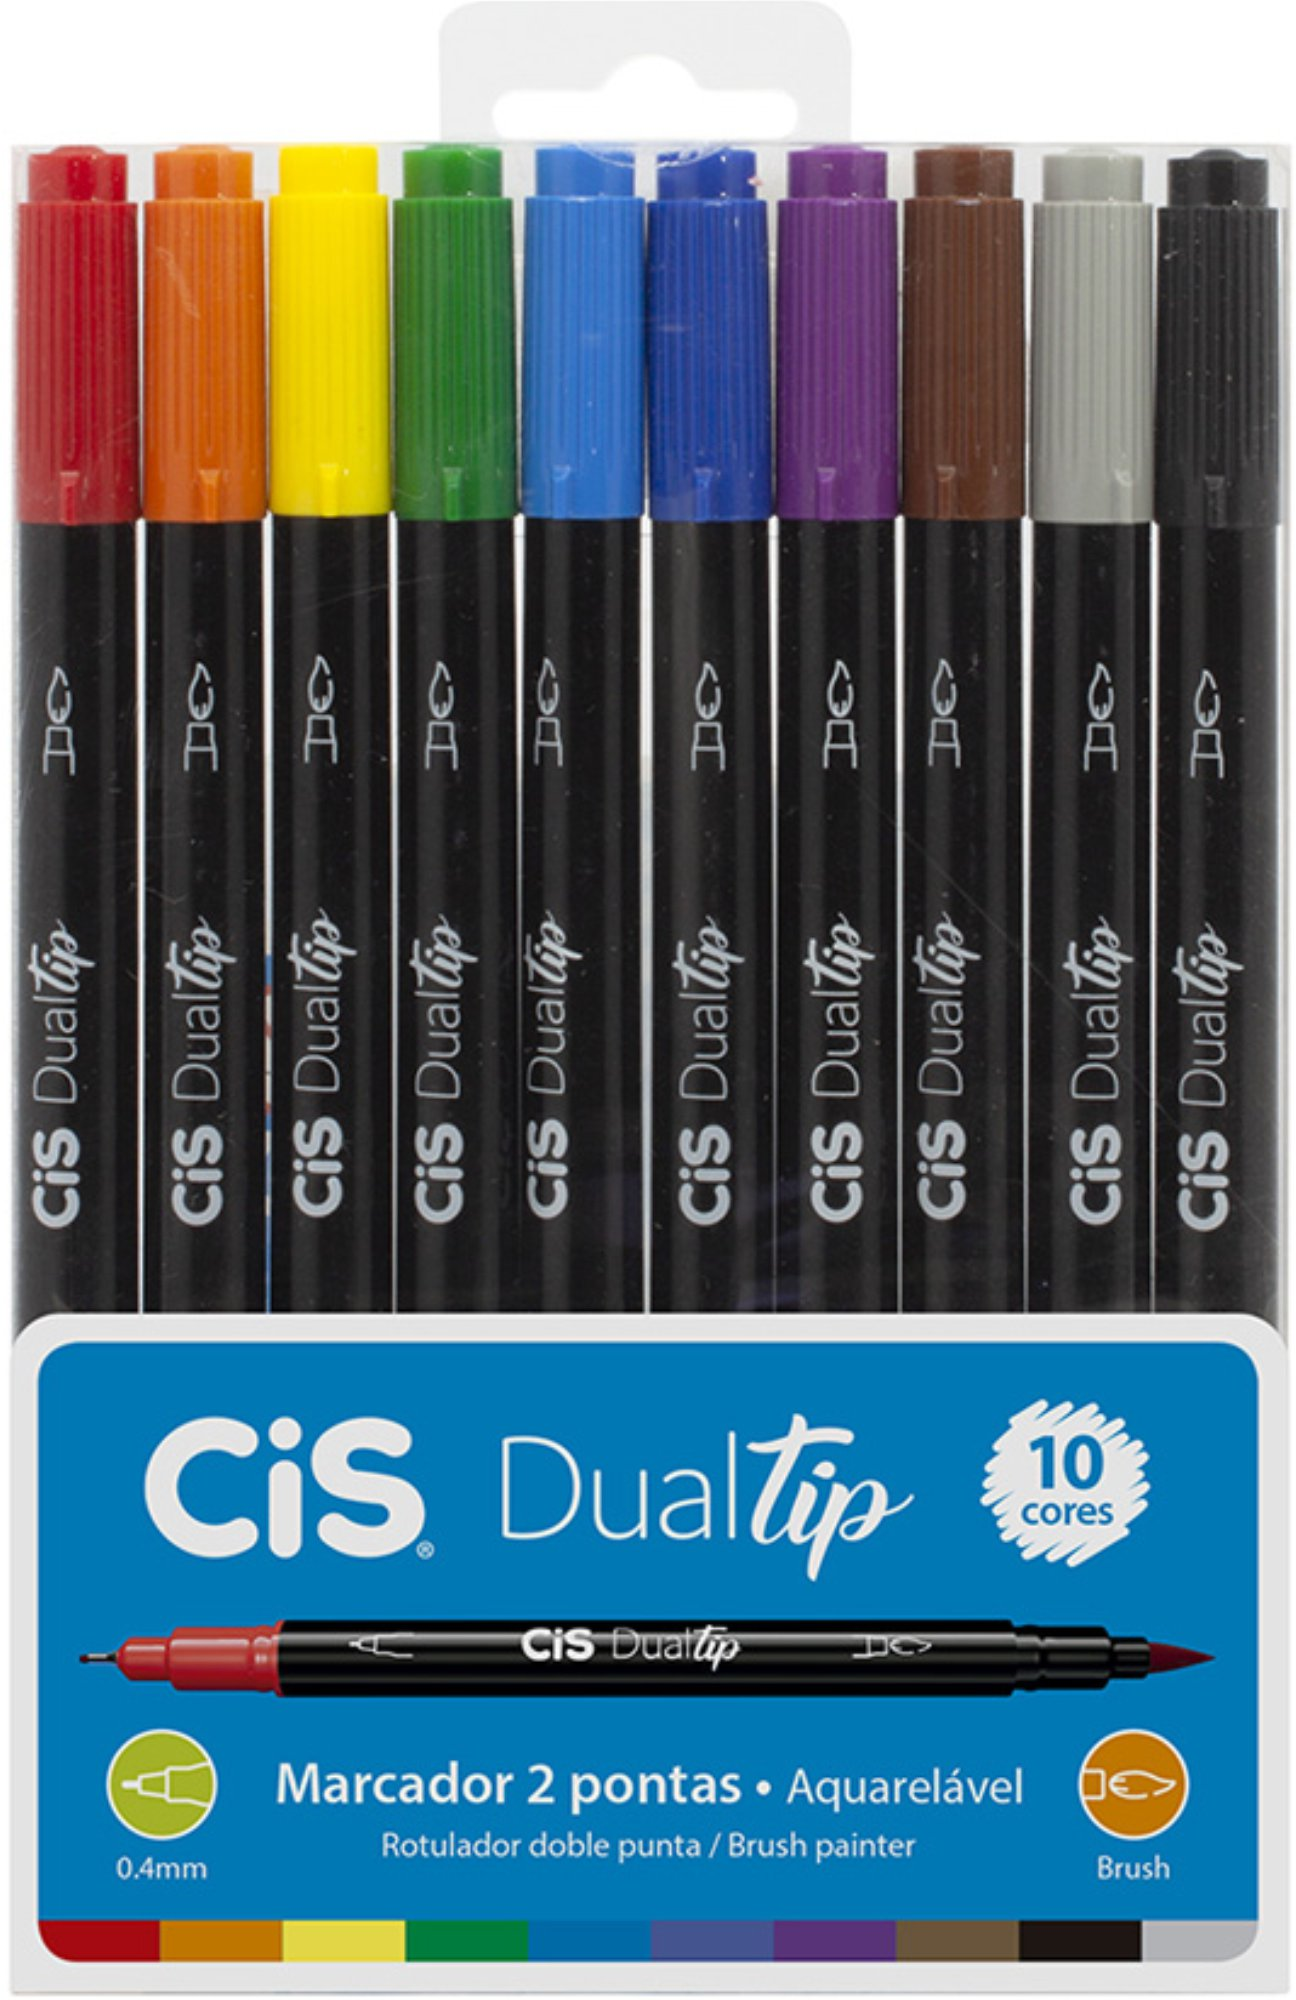 Caneta Brush Pen Dual Tip Cis 10 Cores